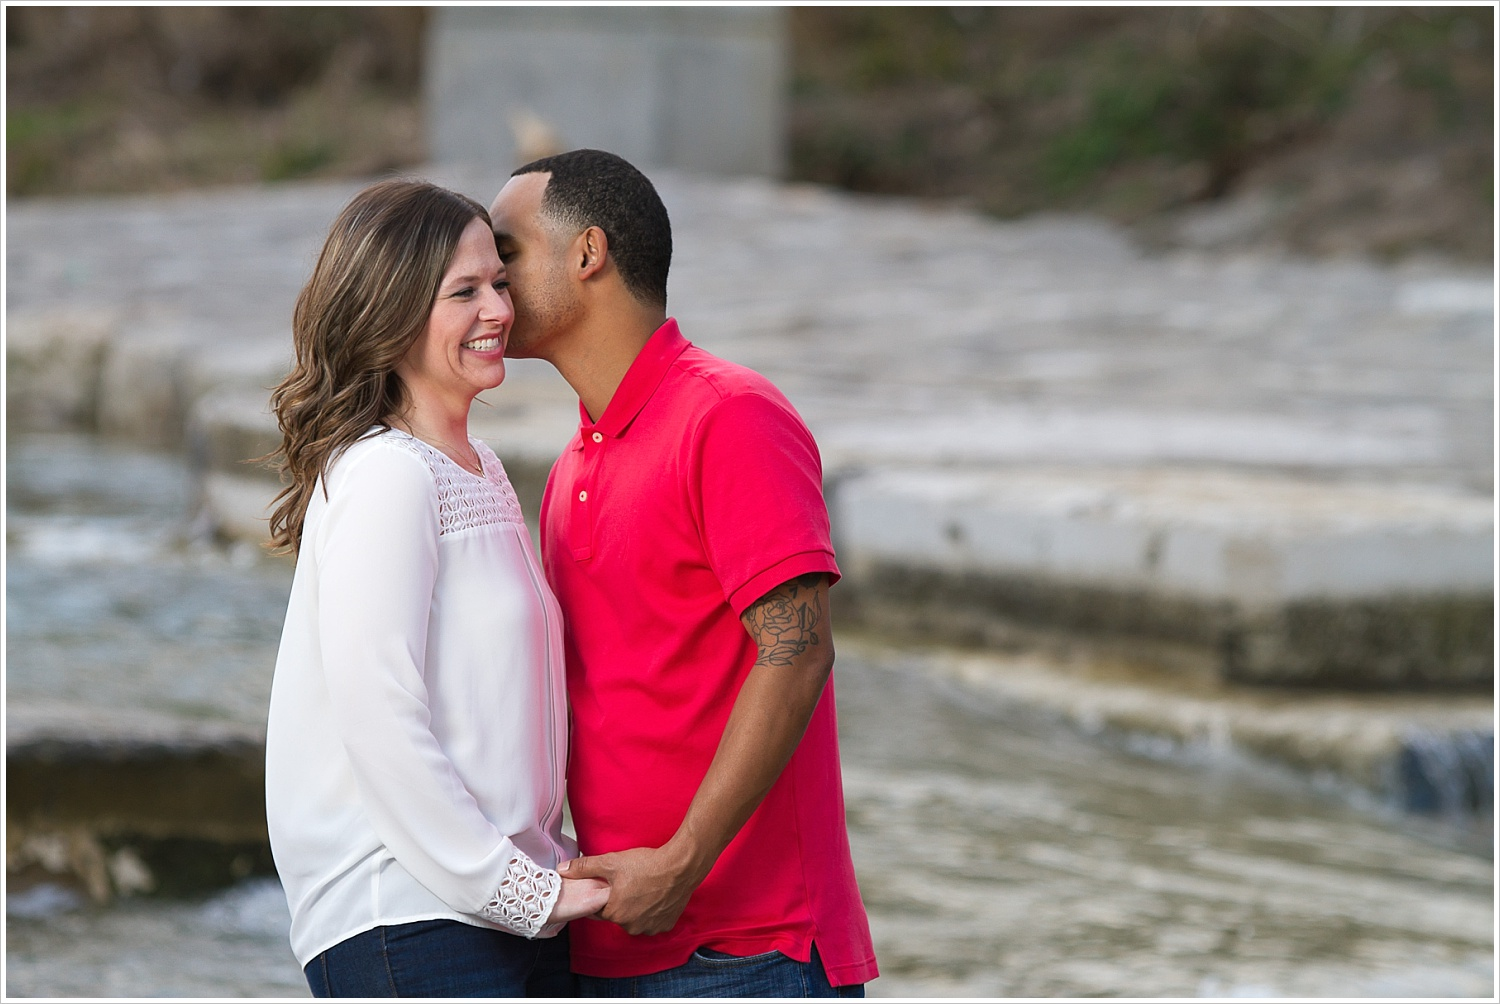 Fiance whispers into bride-to-be's ear during engagement portraits